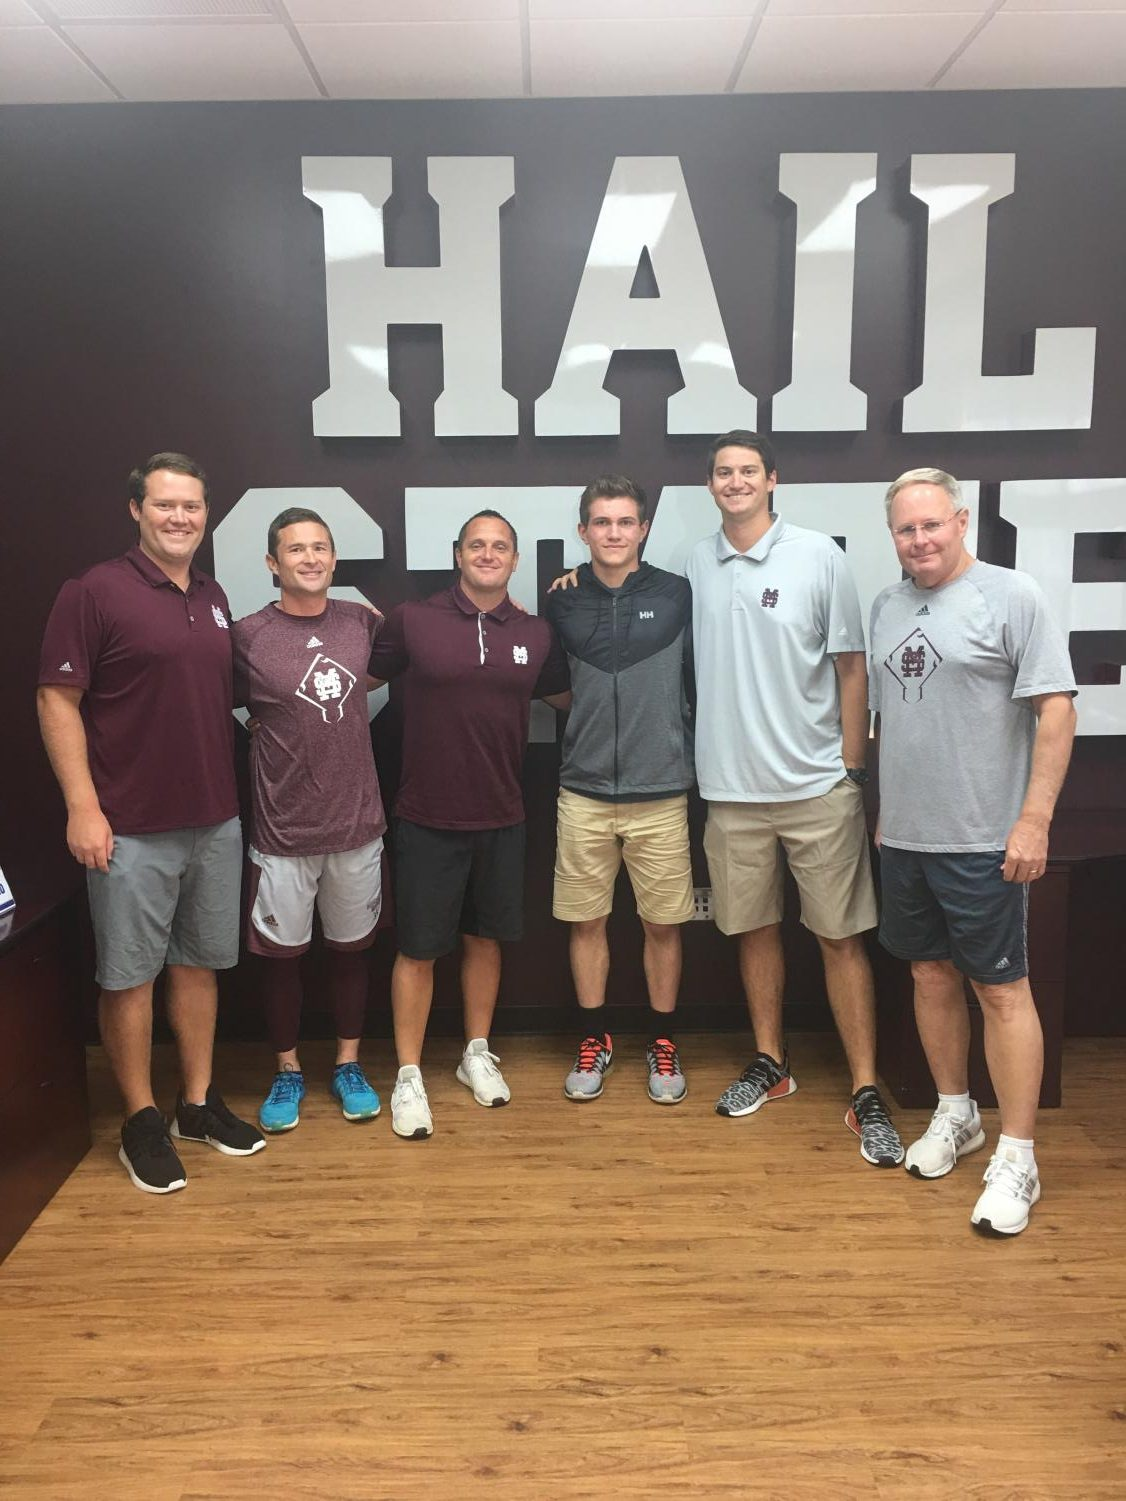 Junior Ryan Ross and the coaching staff from Mississippi State University. Fall 2017.